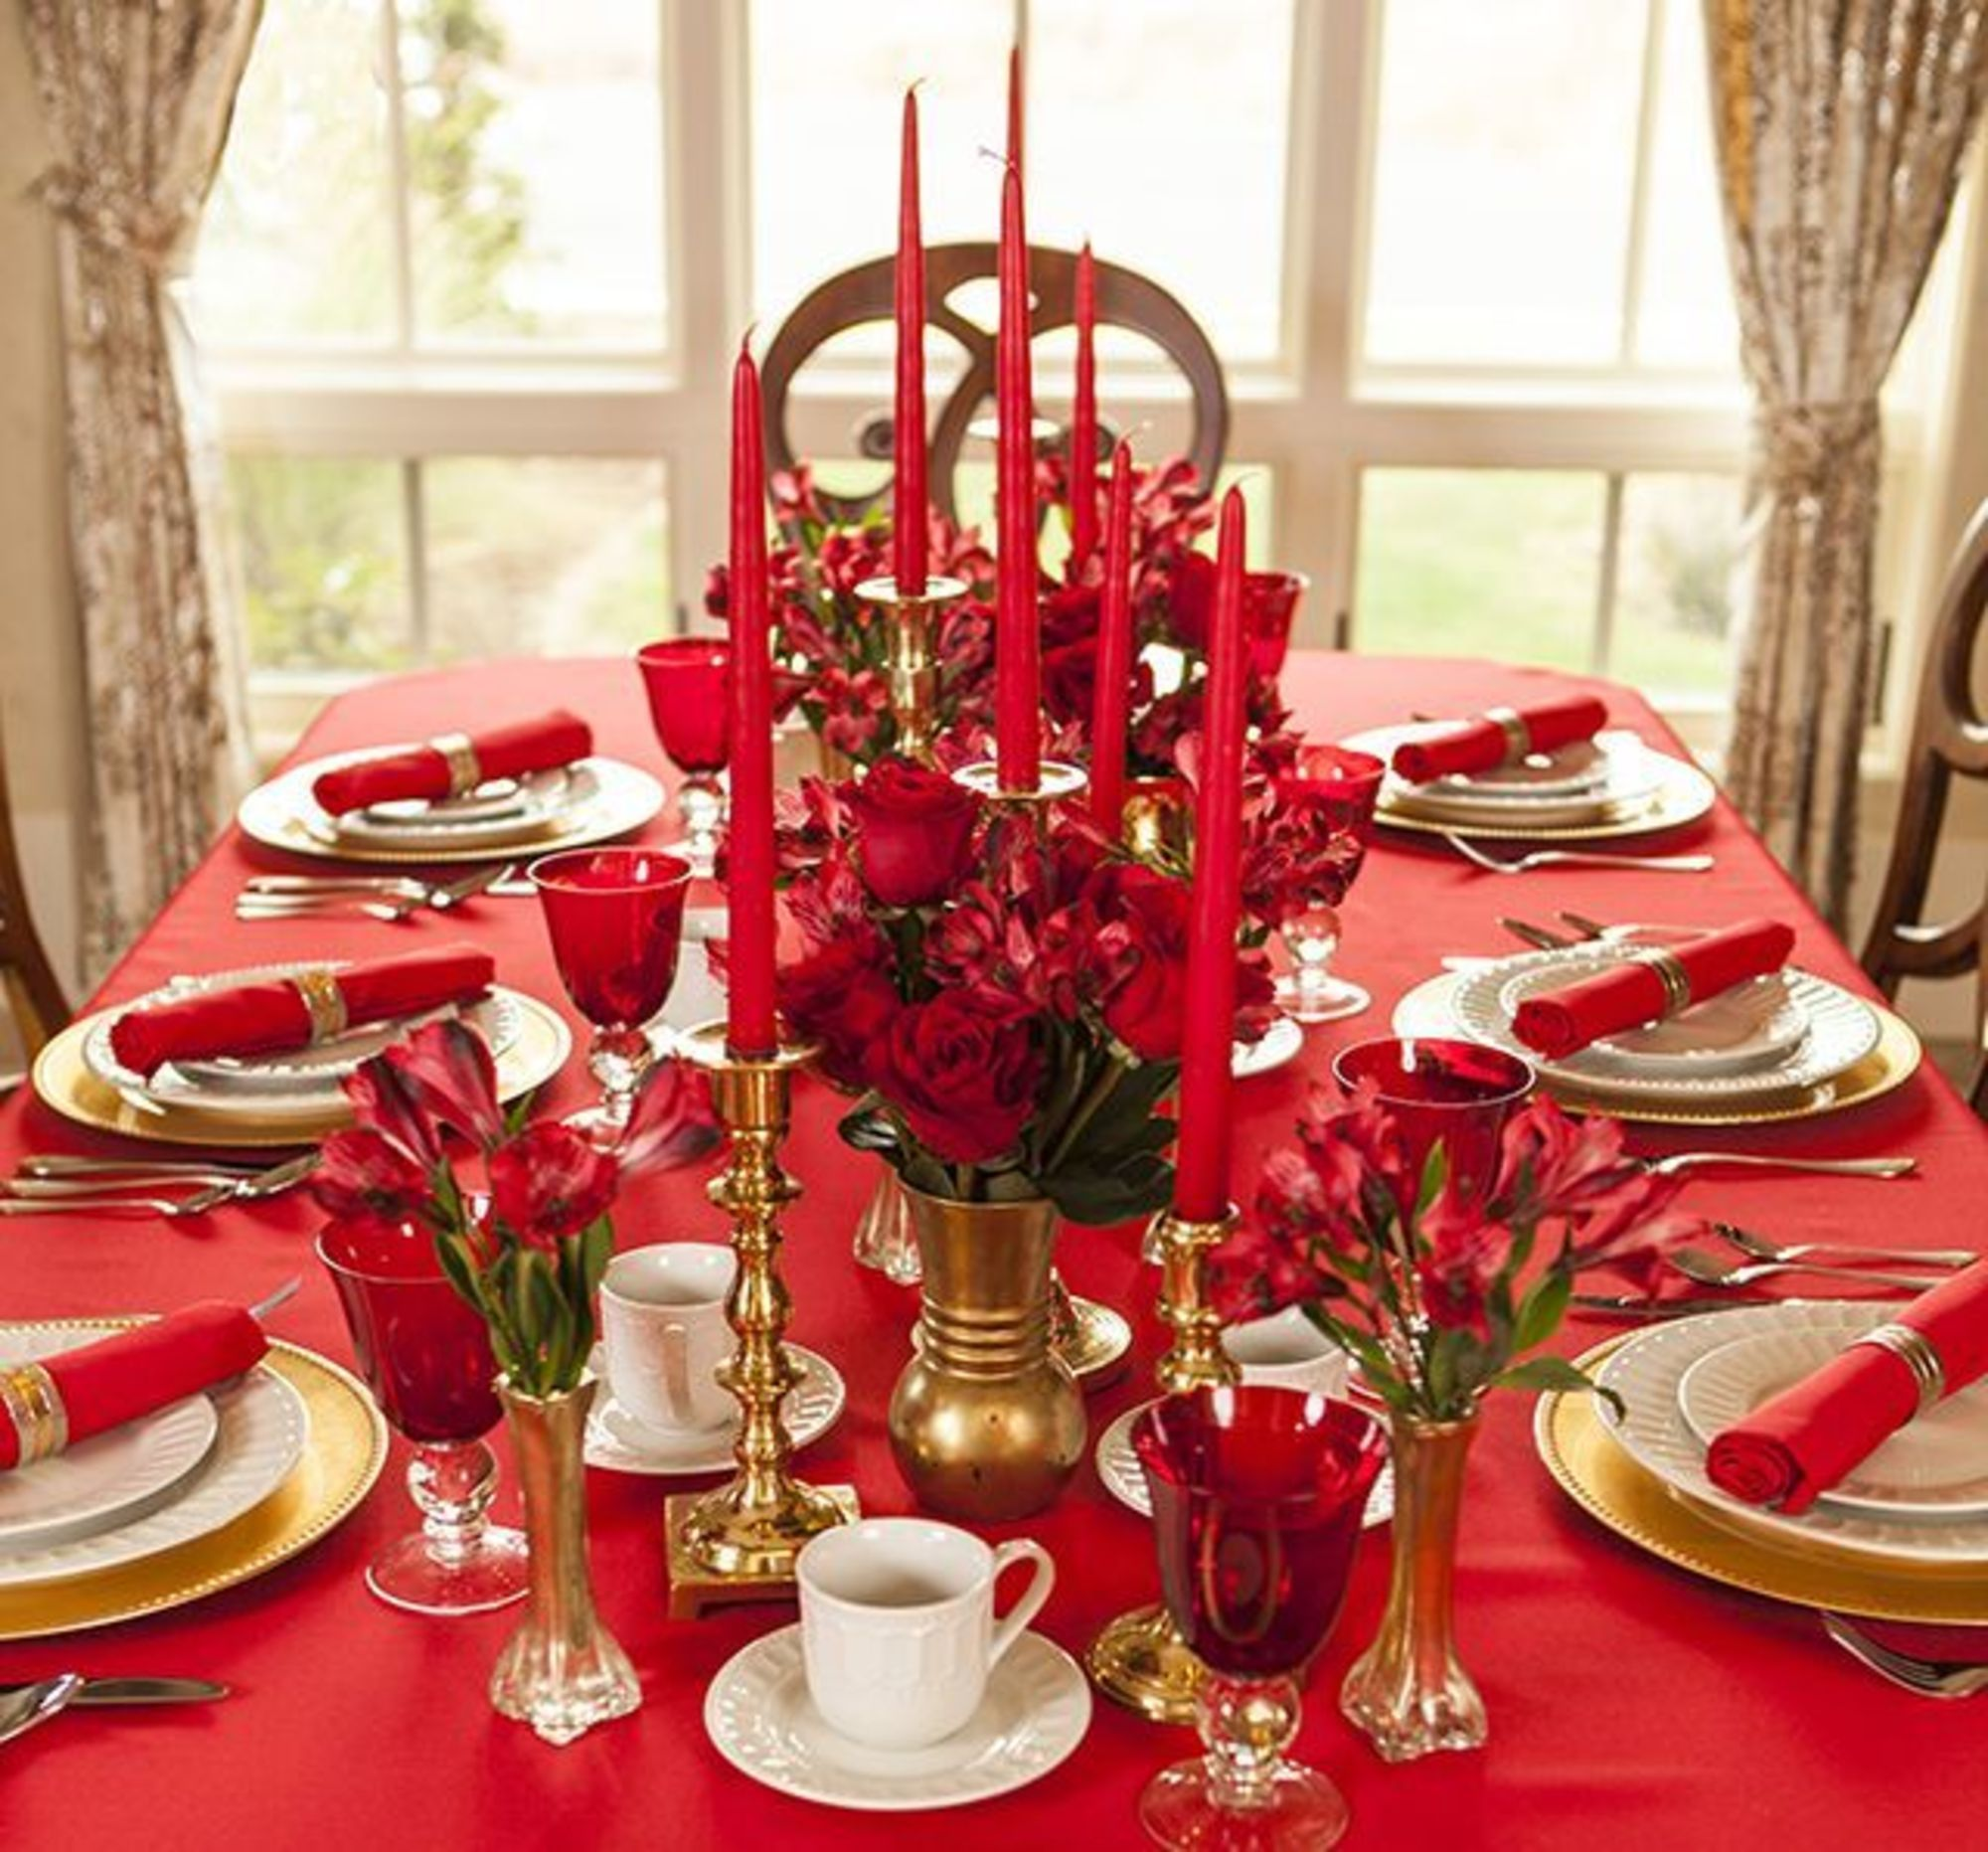 D co table noel table de f te en rouge et or table de no l pinterest et table - Table de noel rouge et or ...